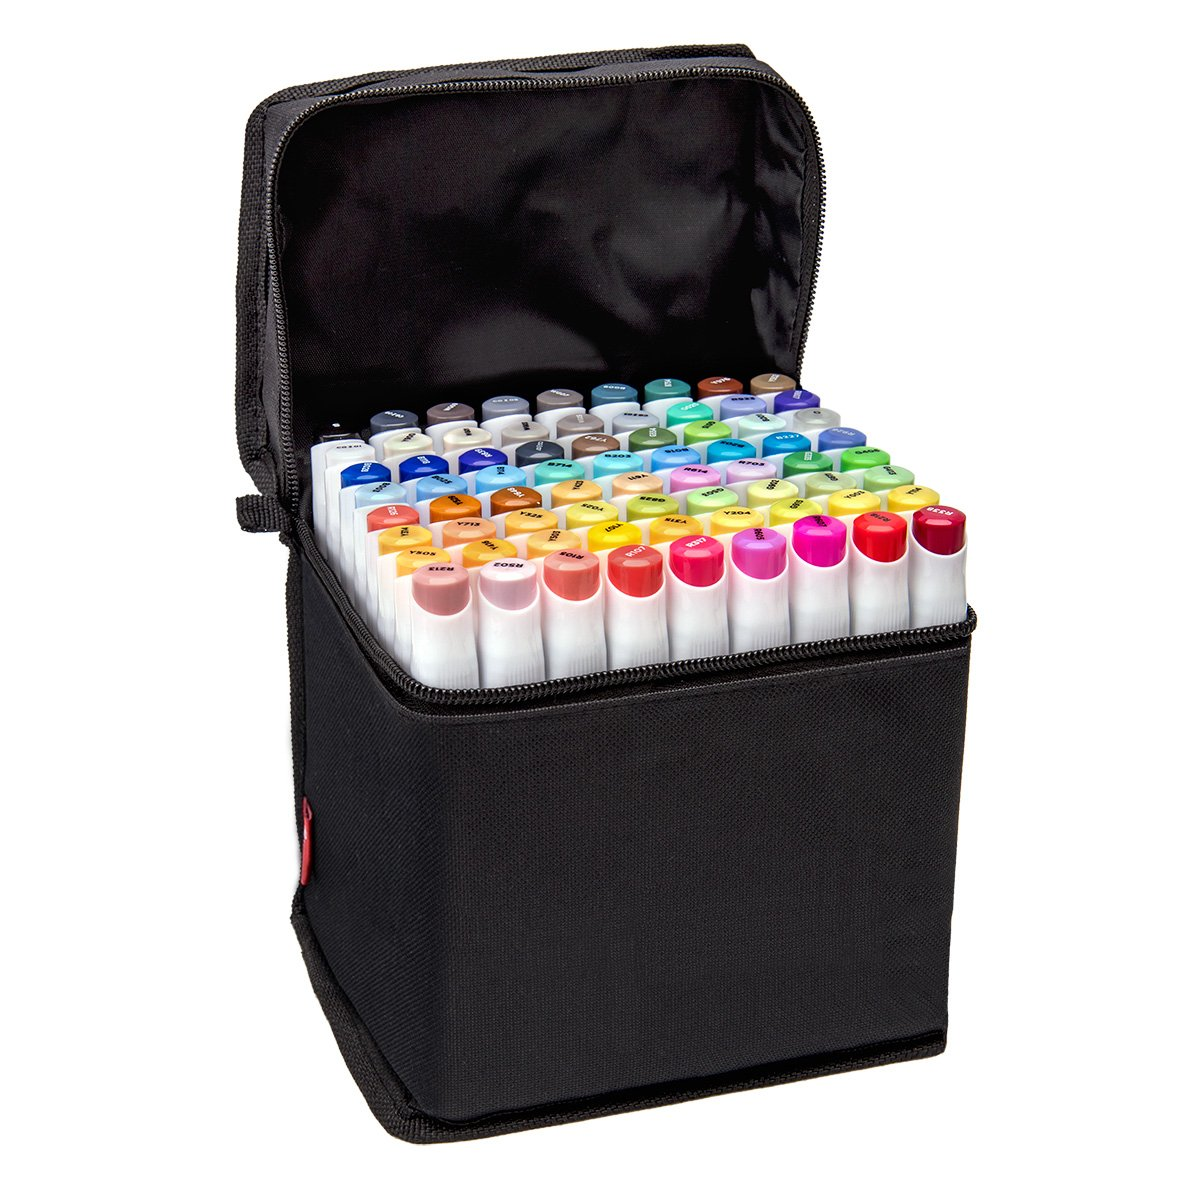 Bianyo Classic Series Alcohol-Based Dual Tip Art Markers(Set of 72,Travel Case) by Bianyo